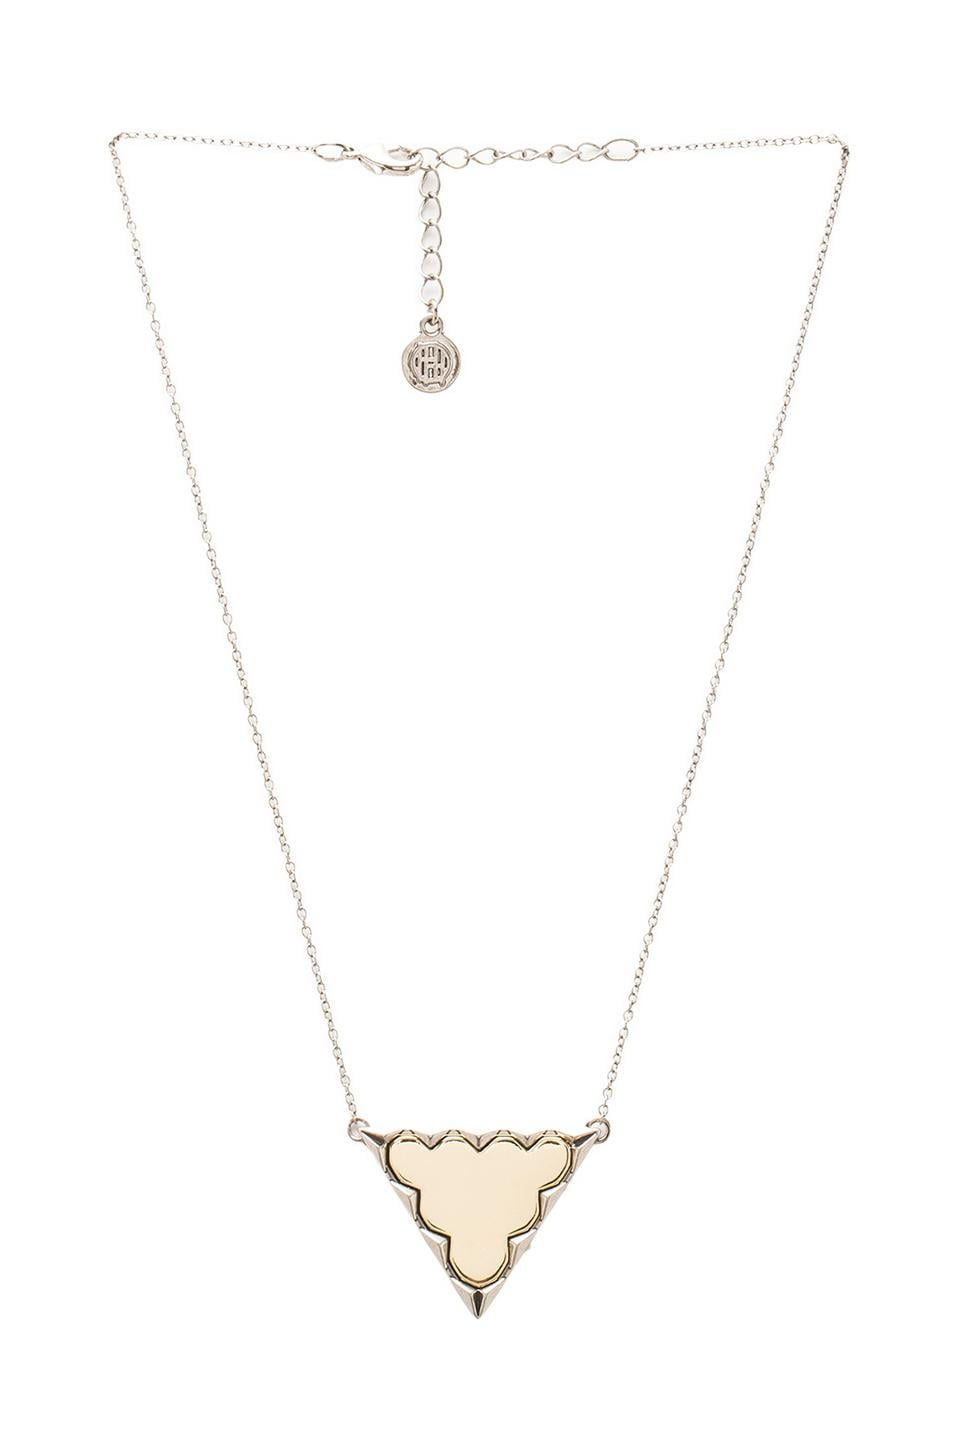 House of Harlow 1960 House of Harlow Classic Reversible Triangle Pendant in Gold